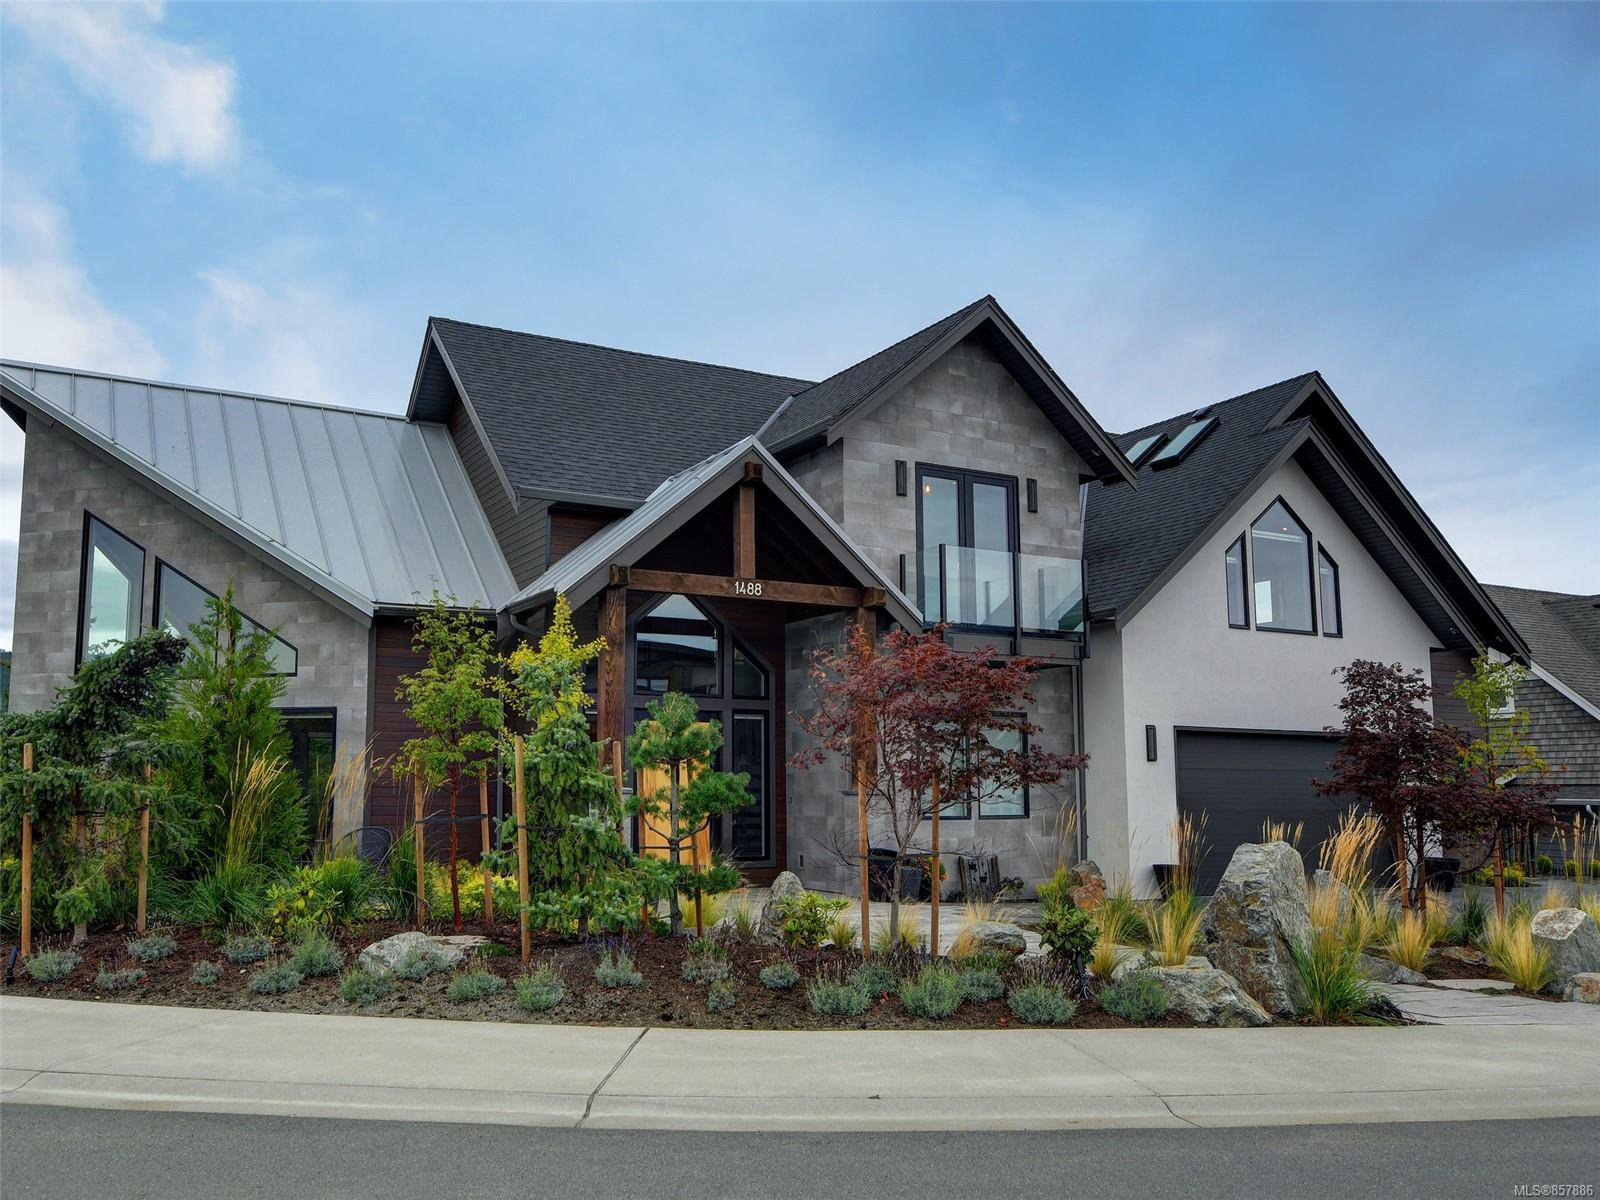 Main Photo: 1488 Pebble Pl in : La Bear Mountain House for sale (Langford)  : MLS®# 857886